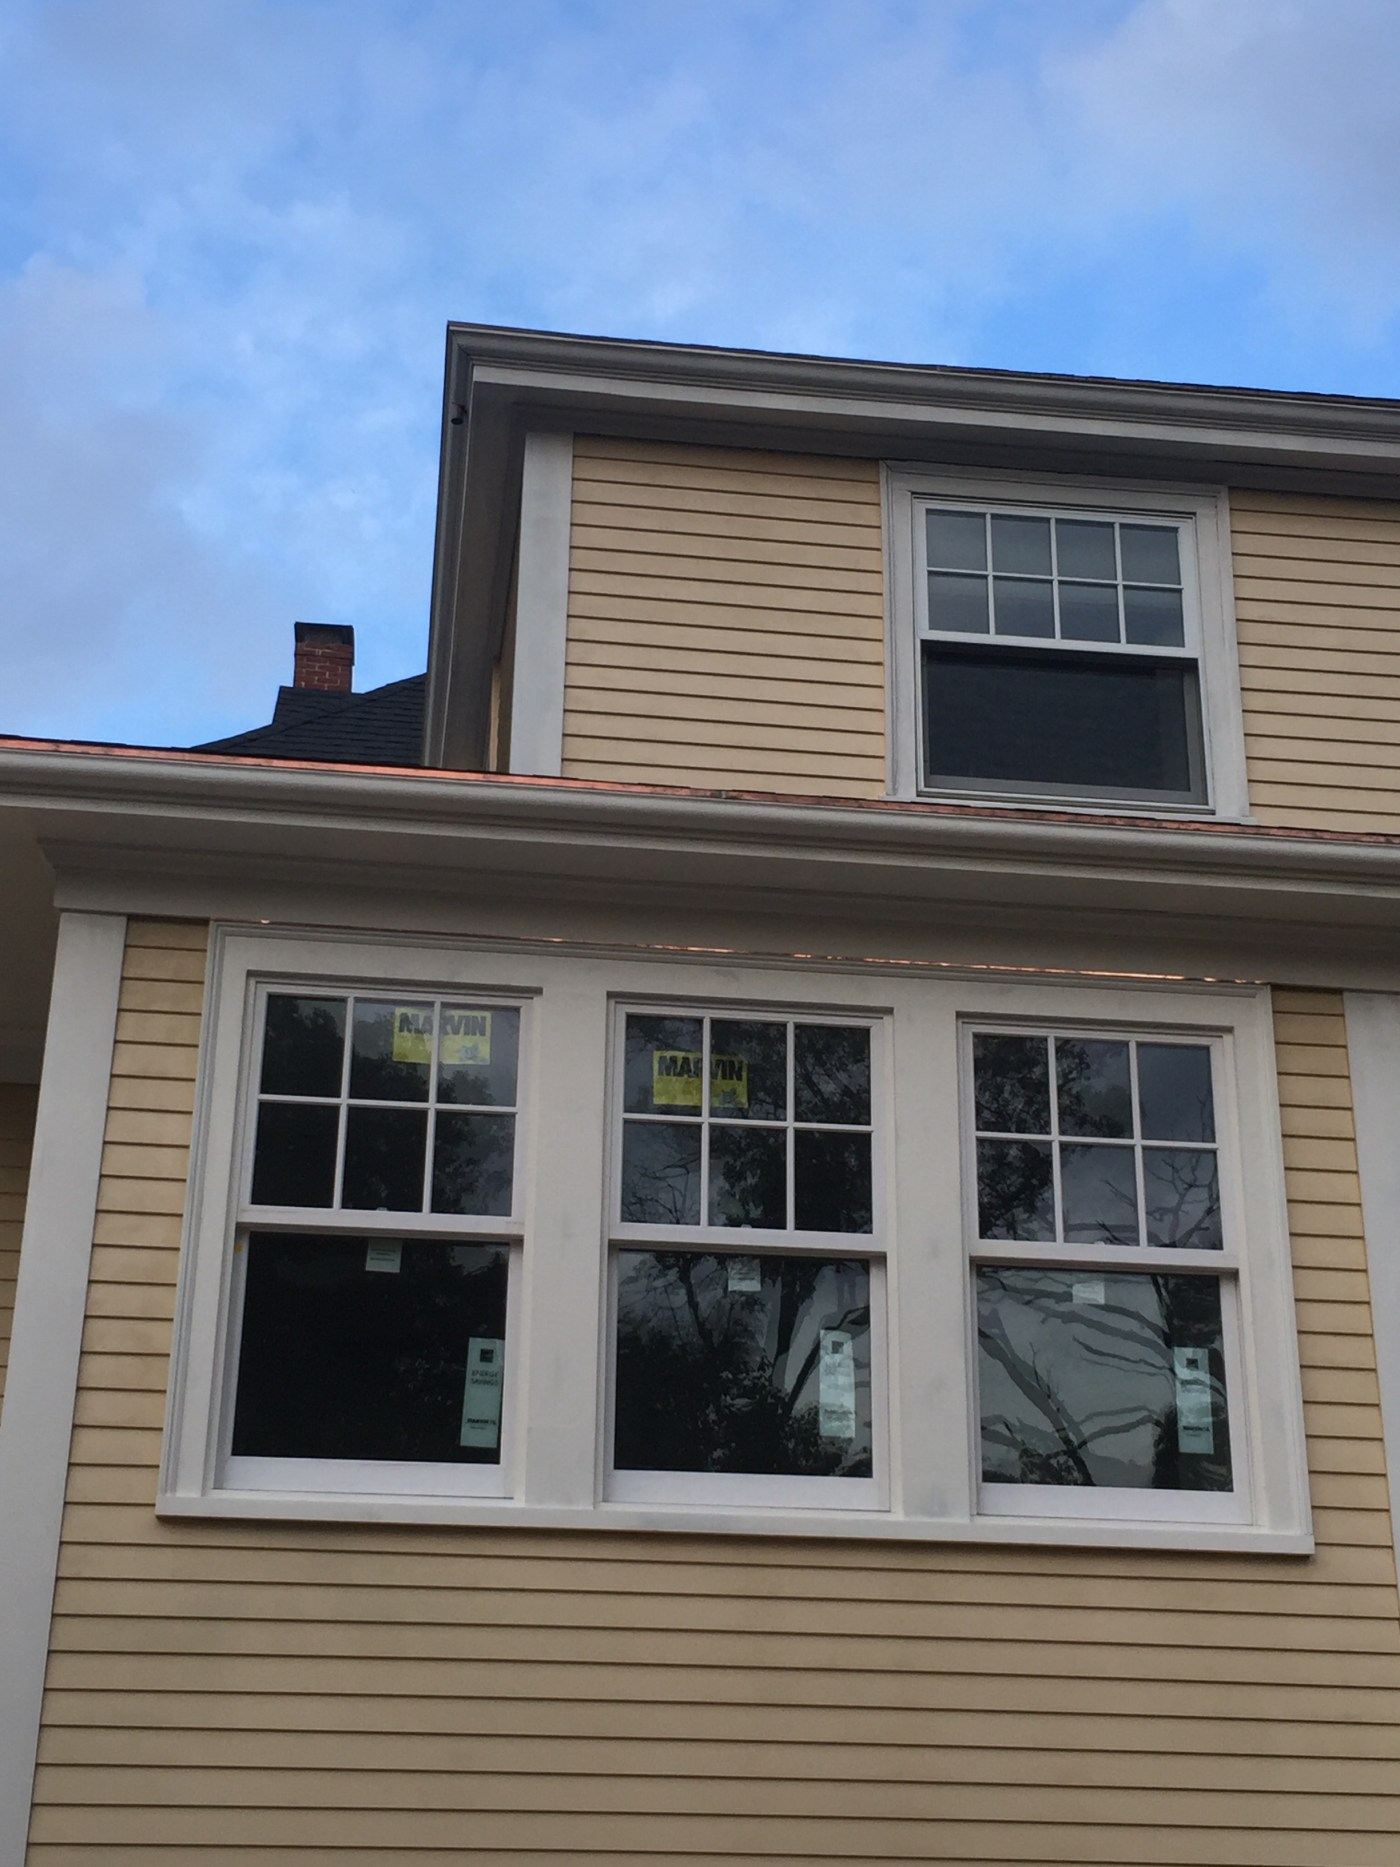 Day 196: Project 1896 (Our Home Renovation) - Major Progress & Minor Adjustments